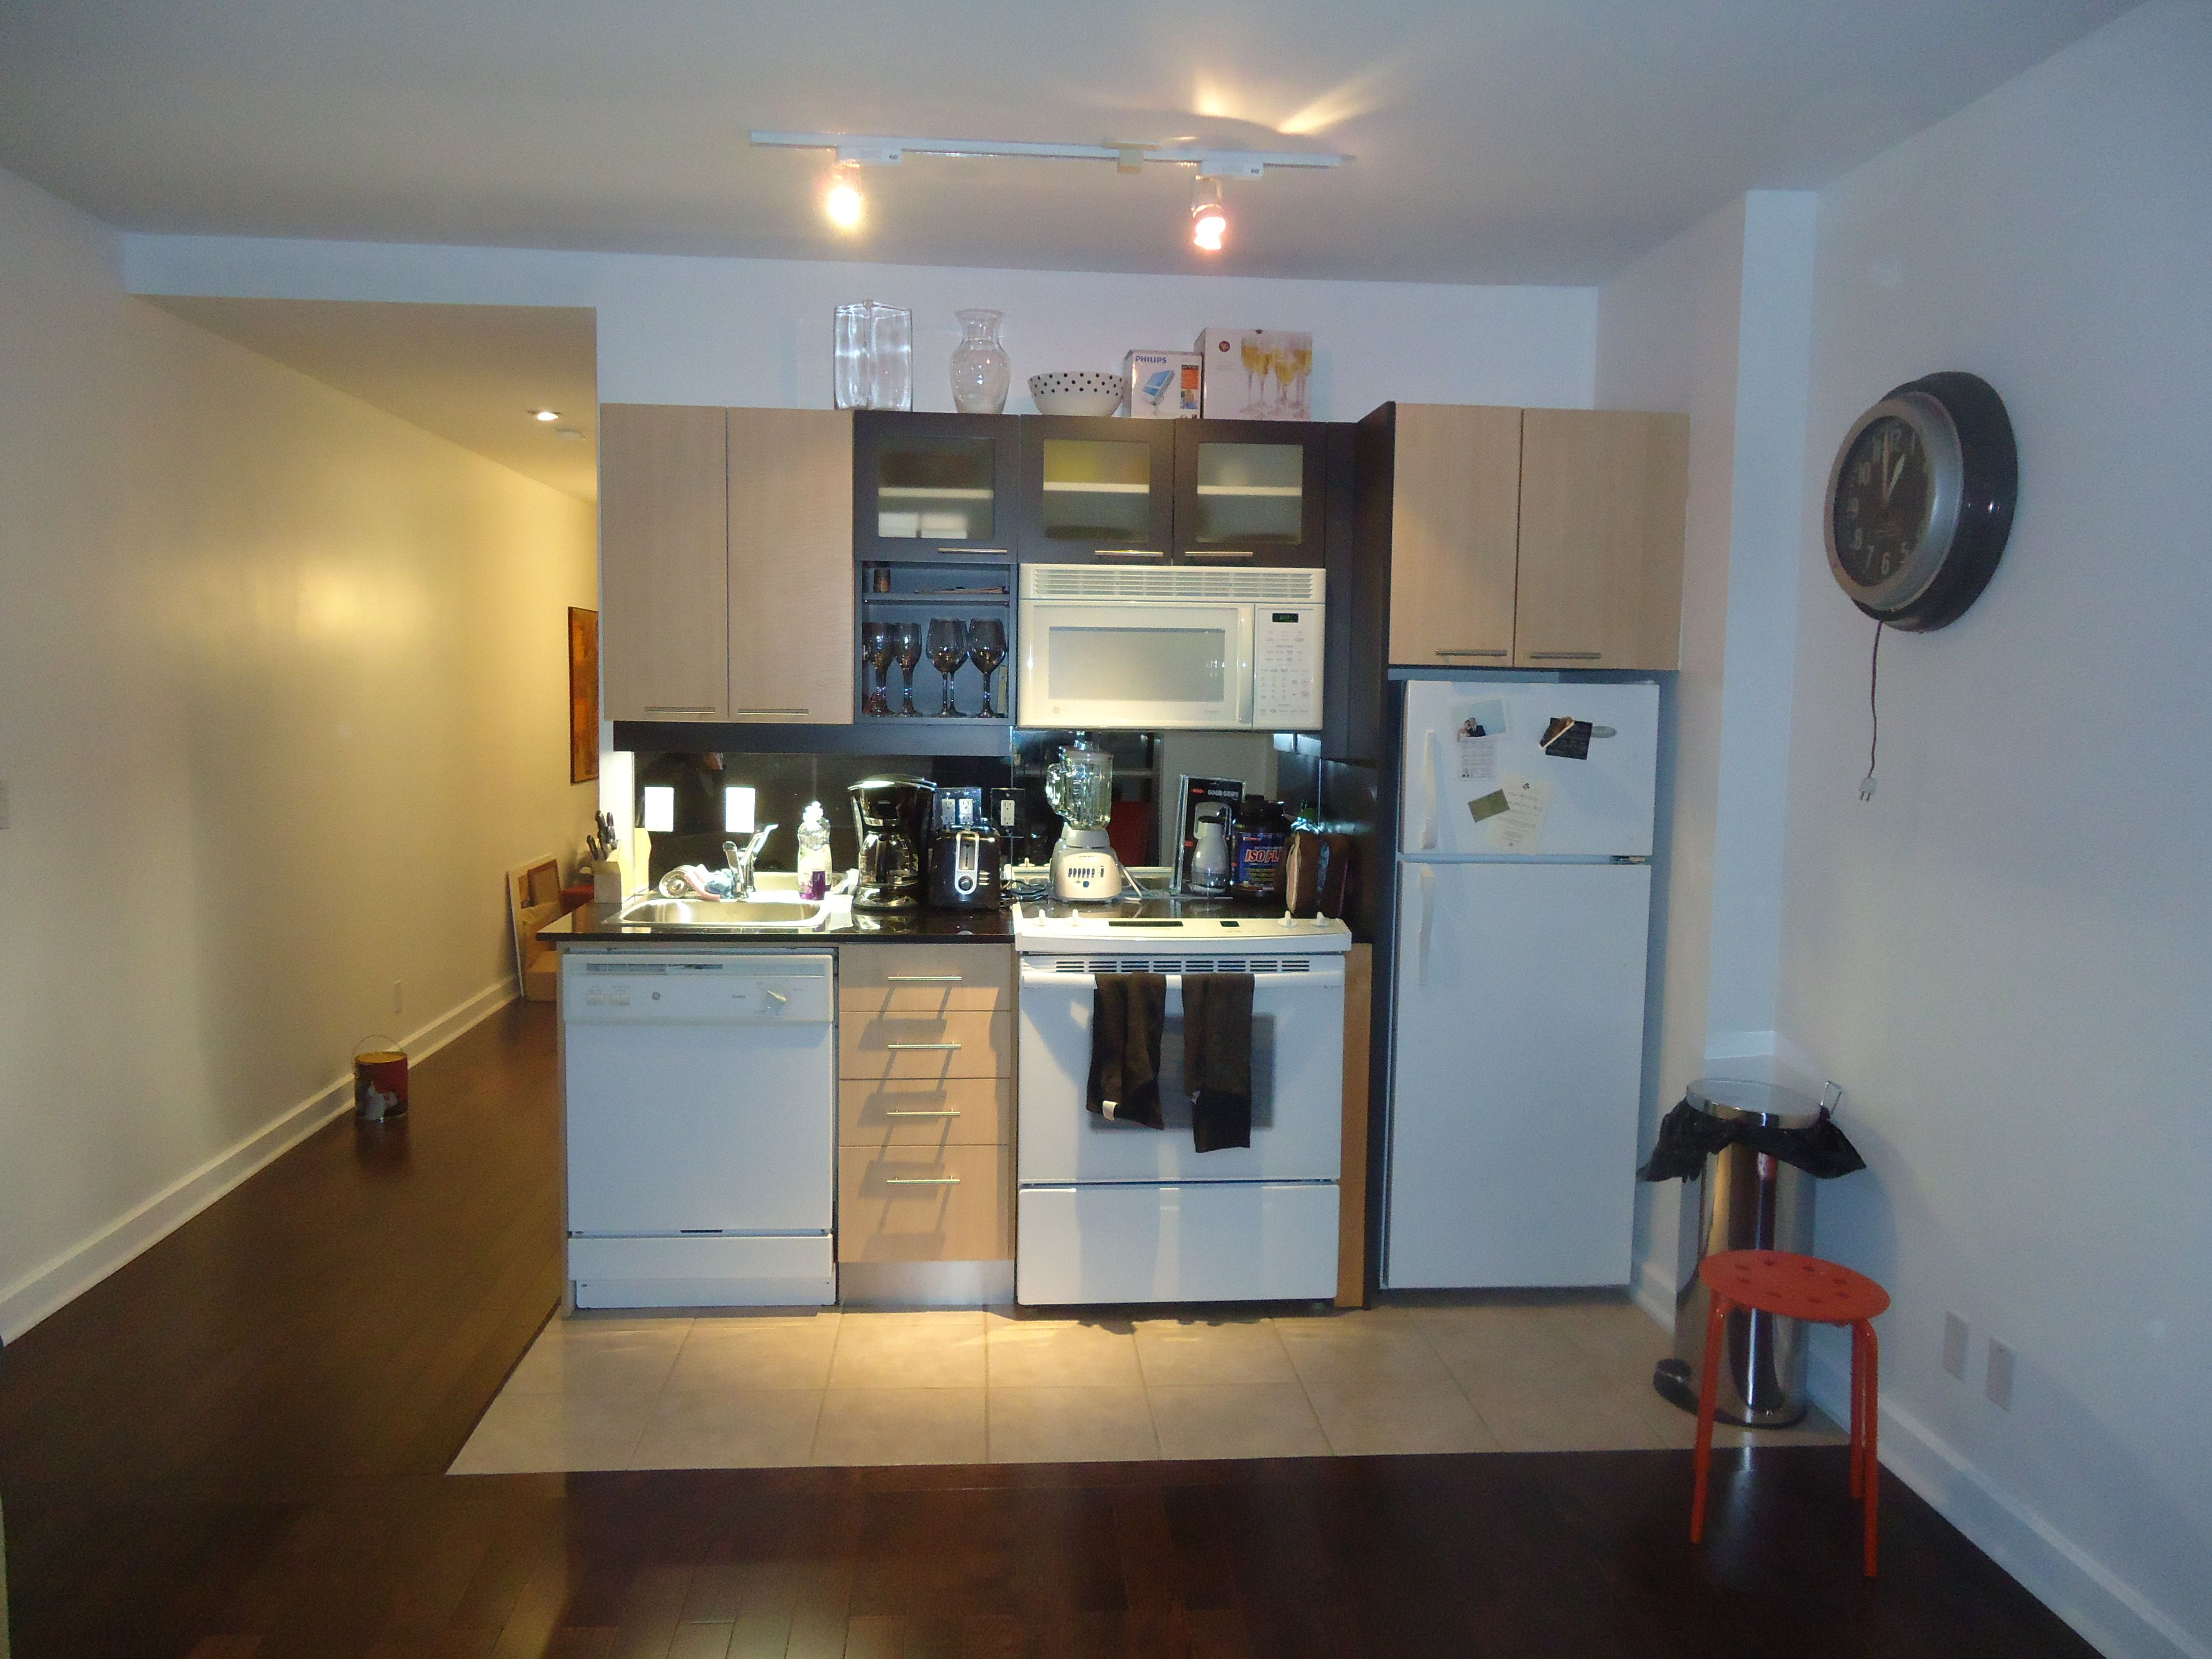 Best Single Wall Kitchen Layout In Home Design Ideas with